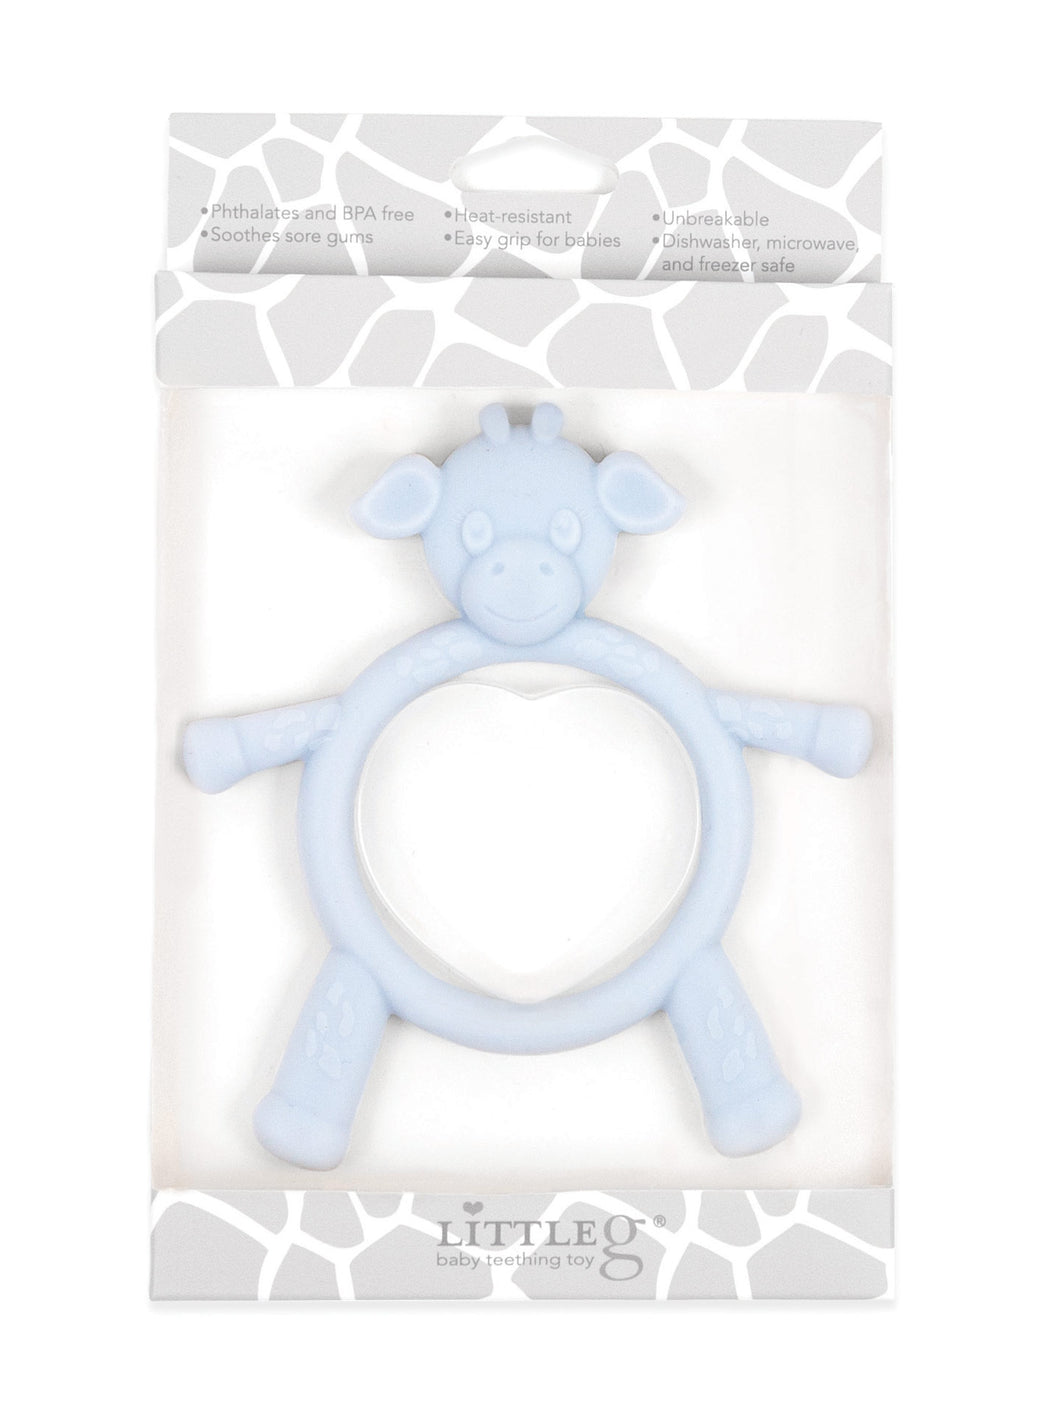 Little Giraffe Little G™ Teething Toy